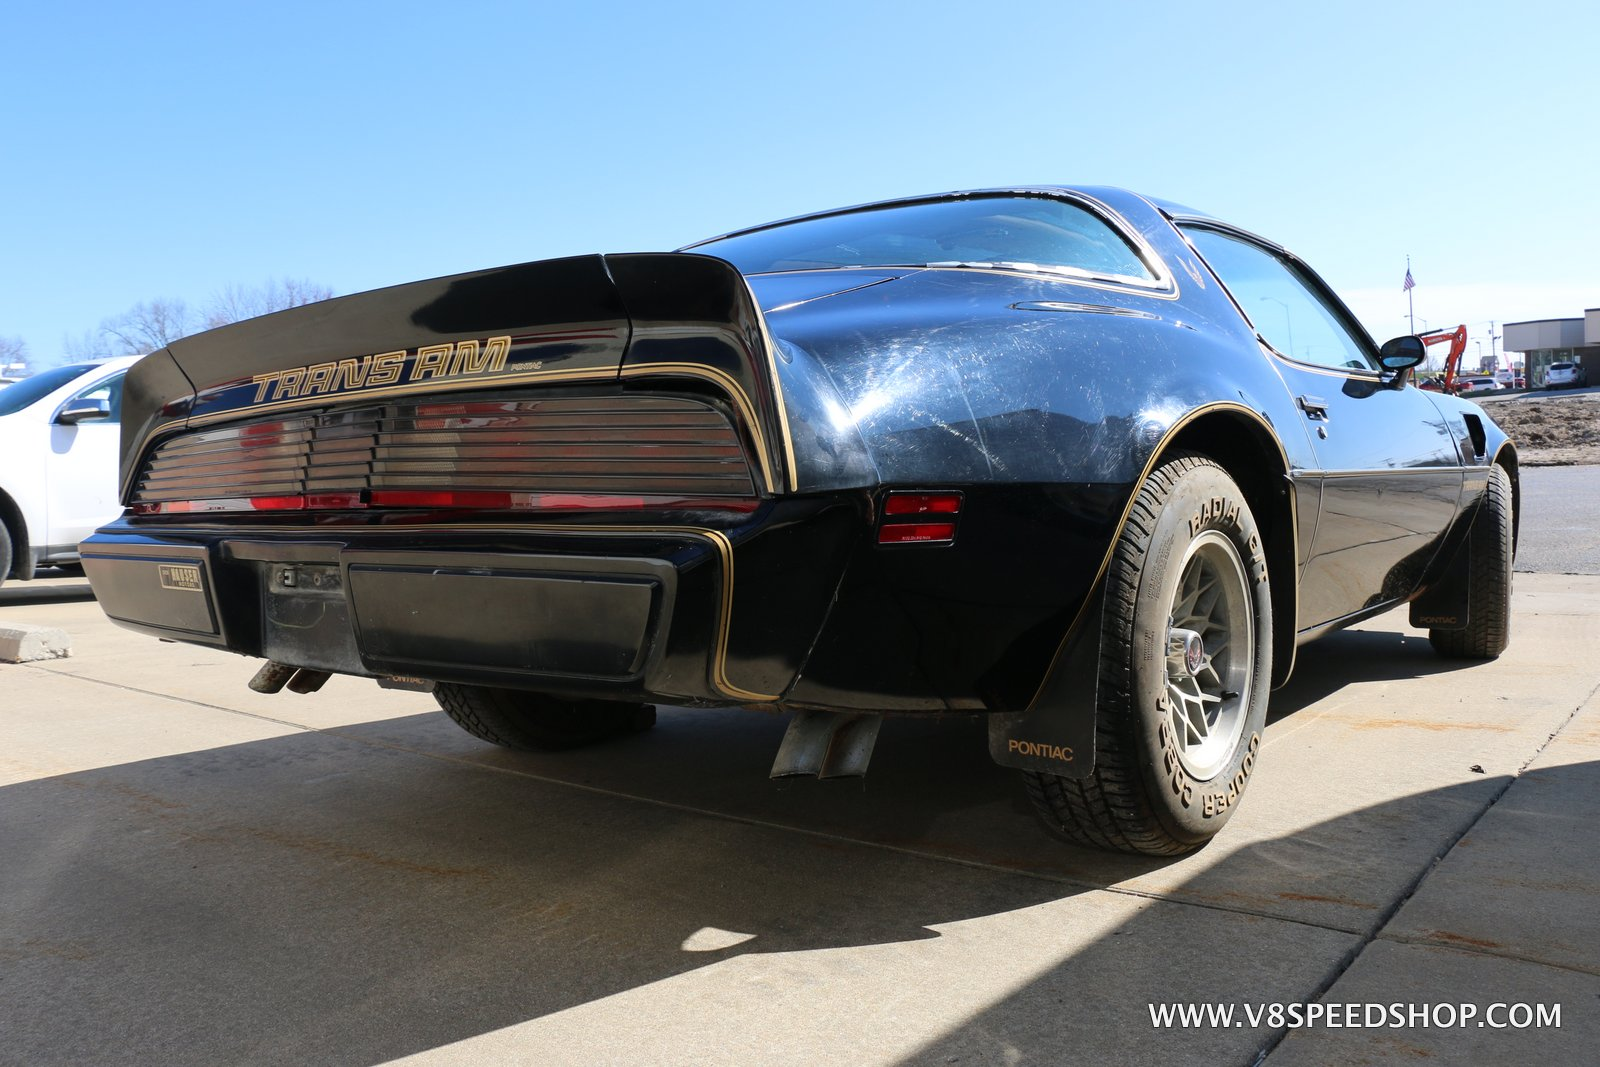 1979 Pontiac Trans Am Maintenance and Upgrades at V8 Speed and Resto Shop